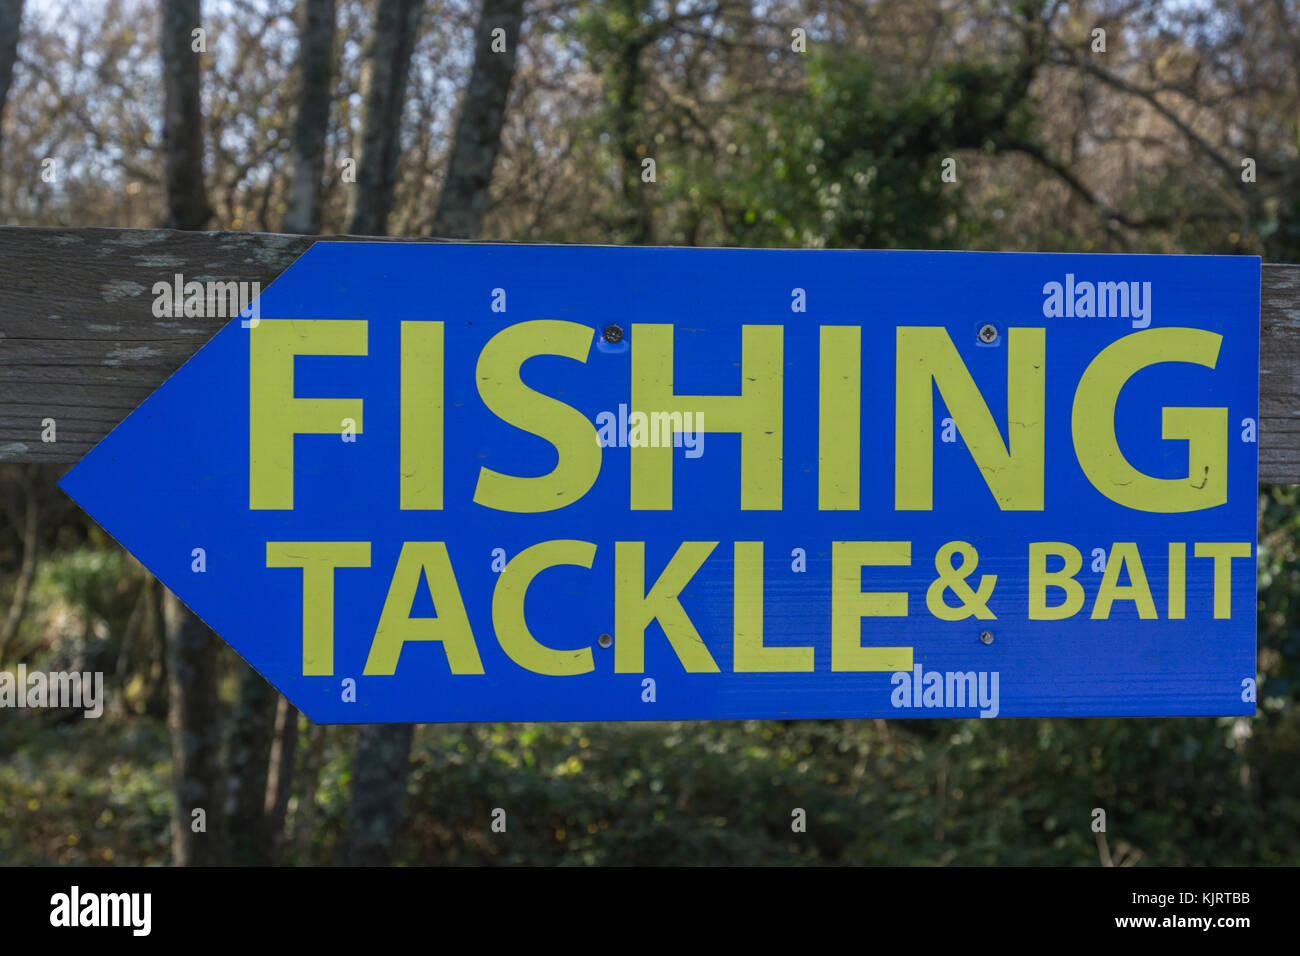 Bait and tackle stock photos bait and tackle stock for Fishing bait store